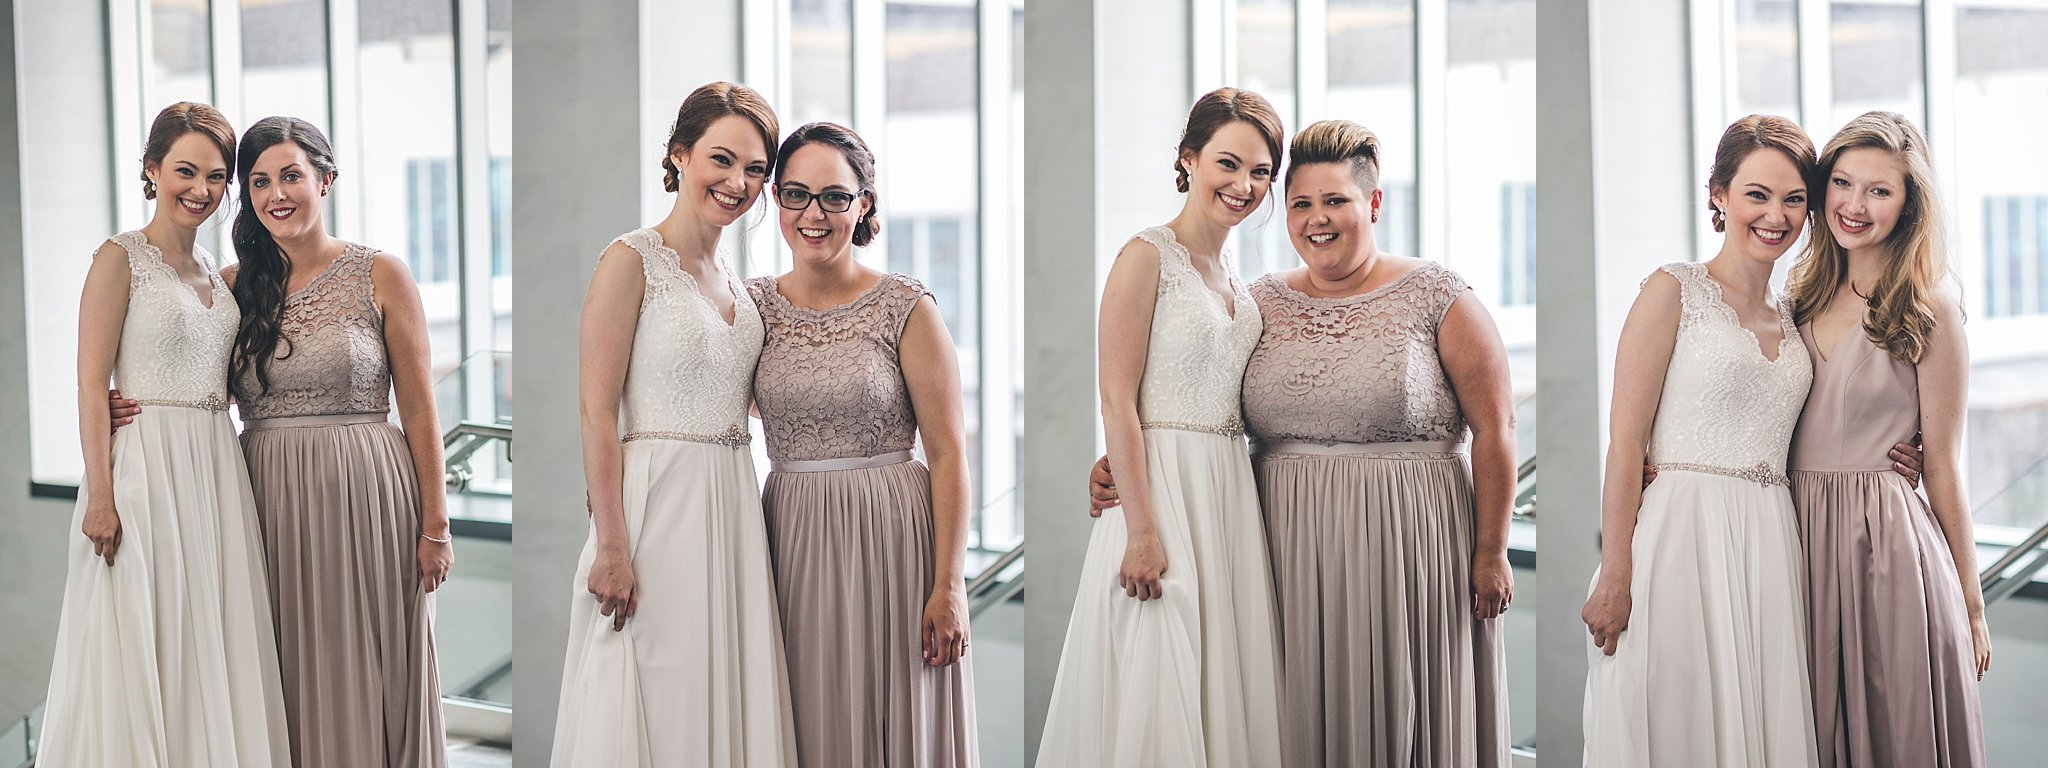 Bride and her maids during a St. John's, Newfoundland wedding